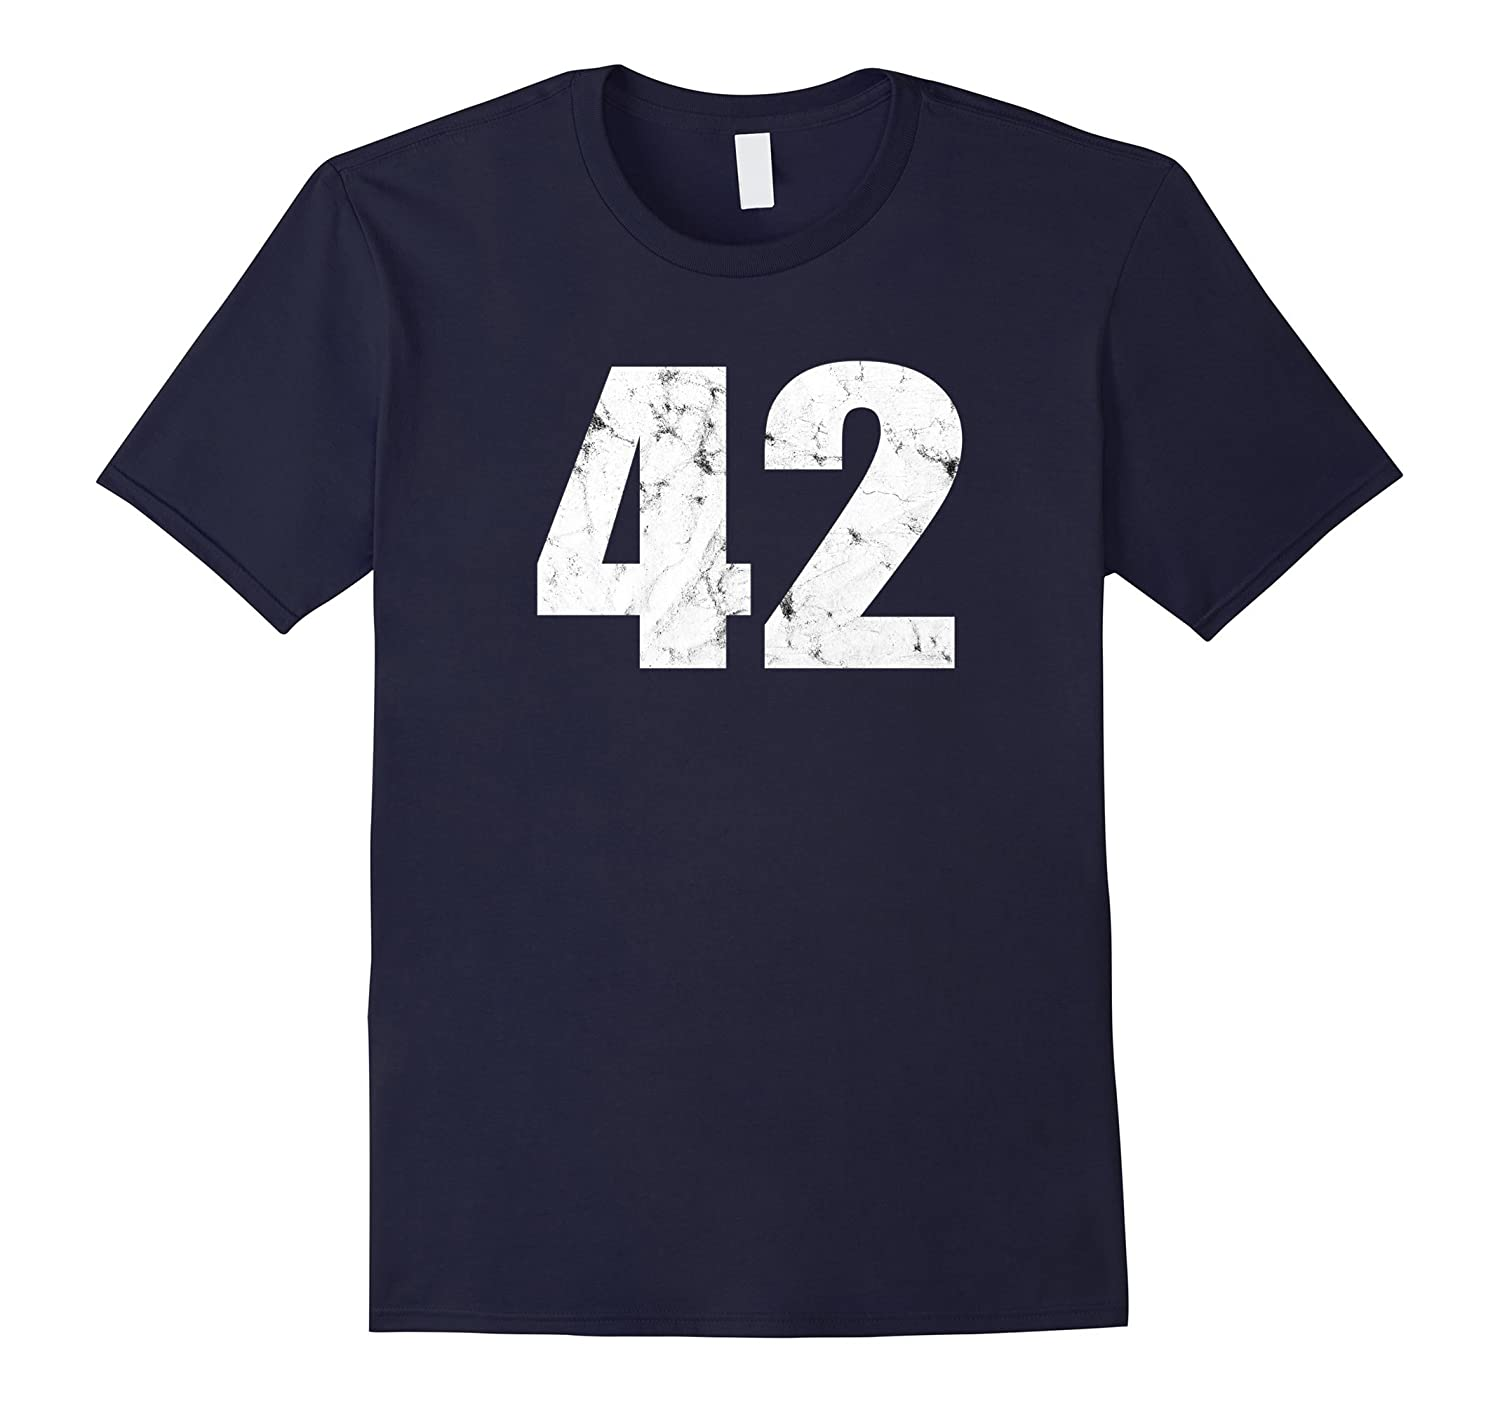 42 Tshirt is the Answer to Life Significant Galaxy Number-PL